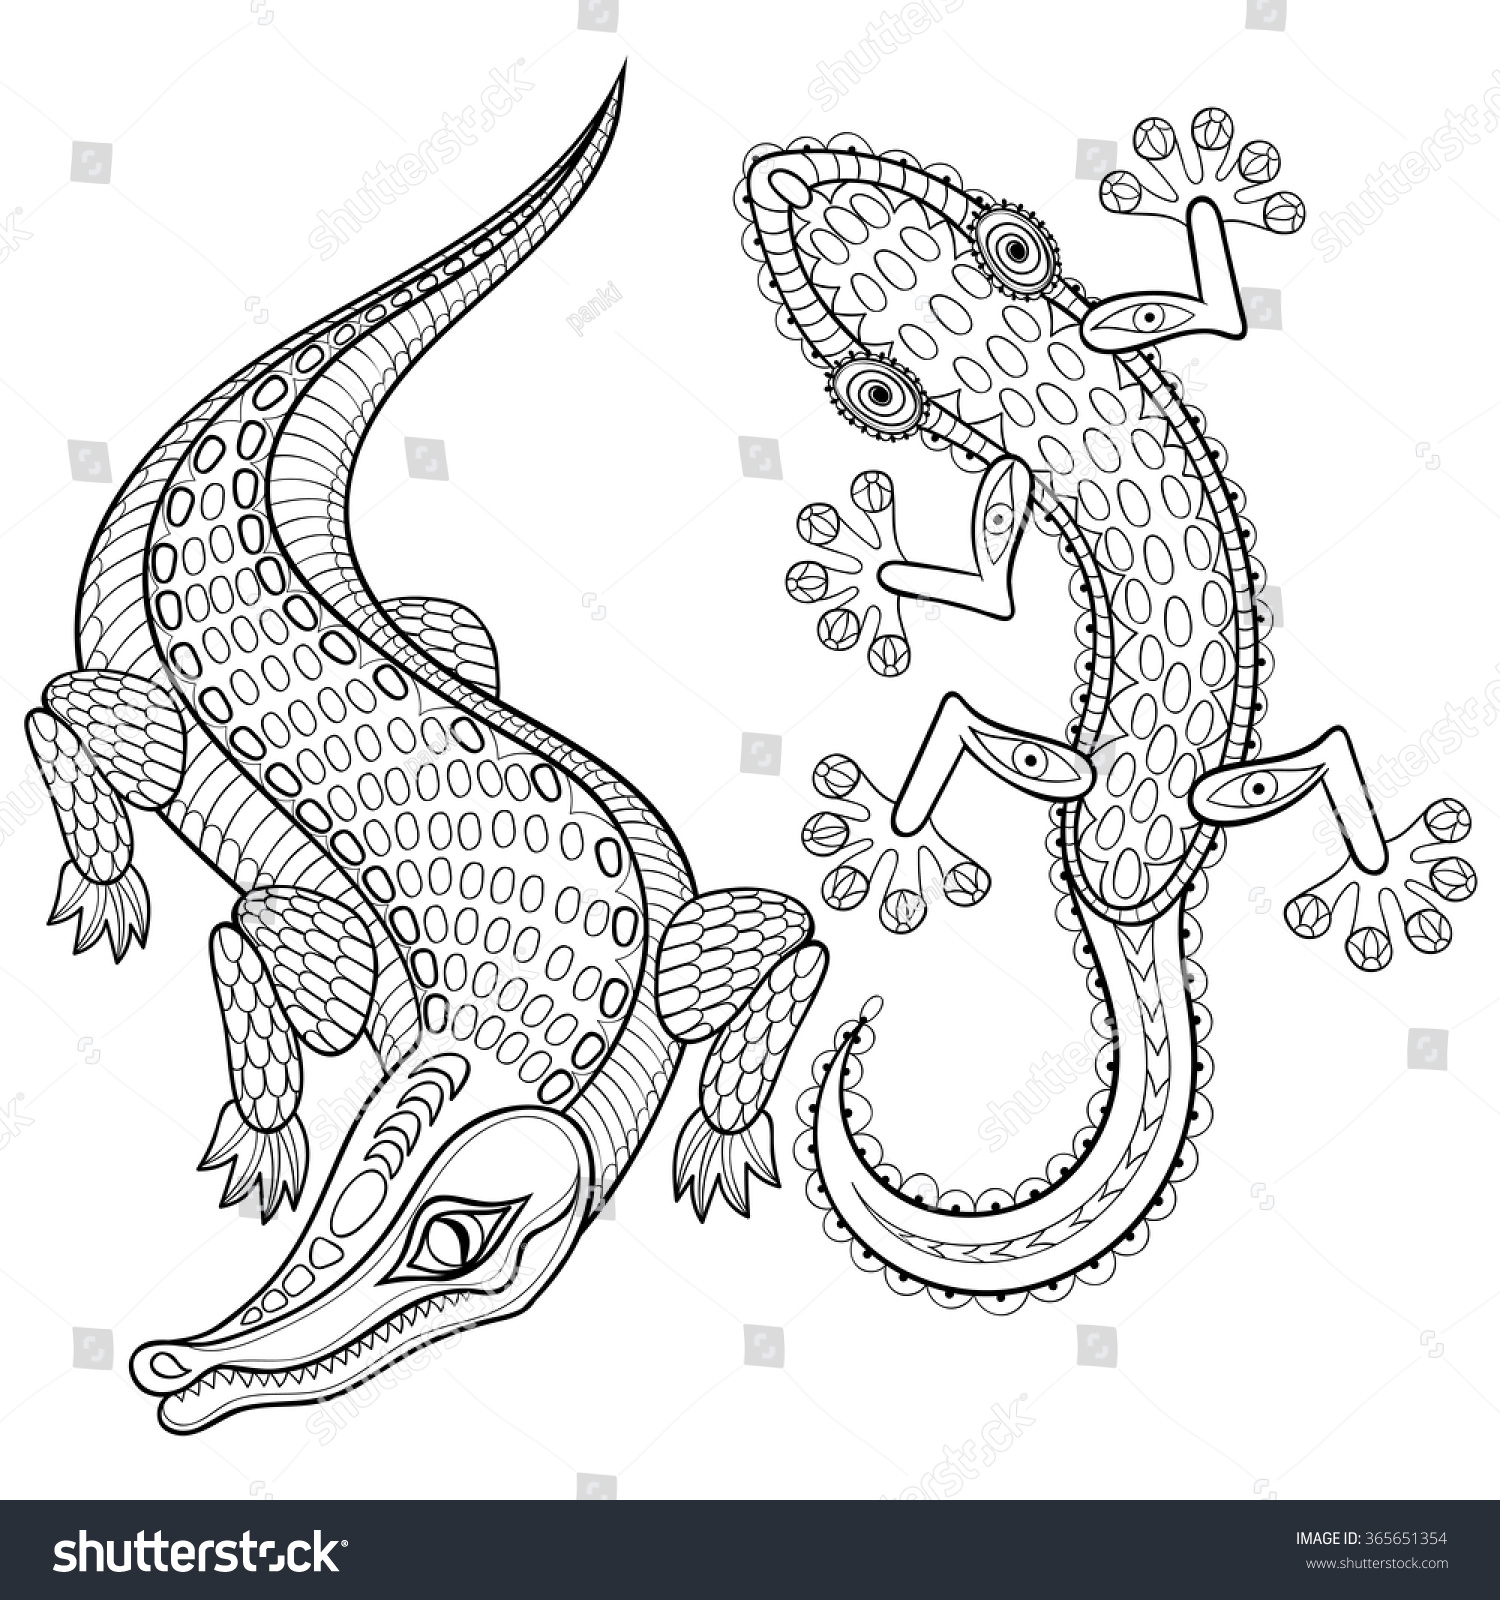 hand drawn zentangled crocodile lizard stock vector